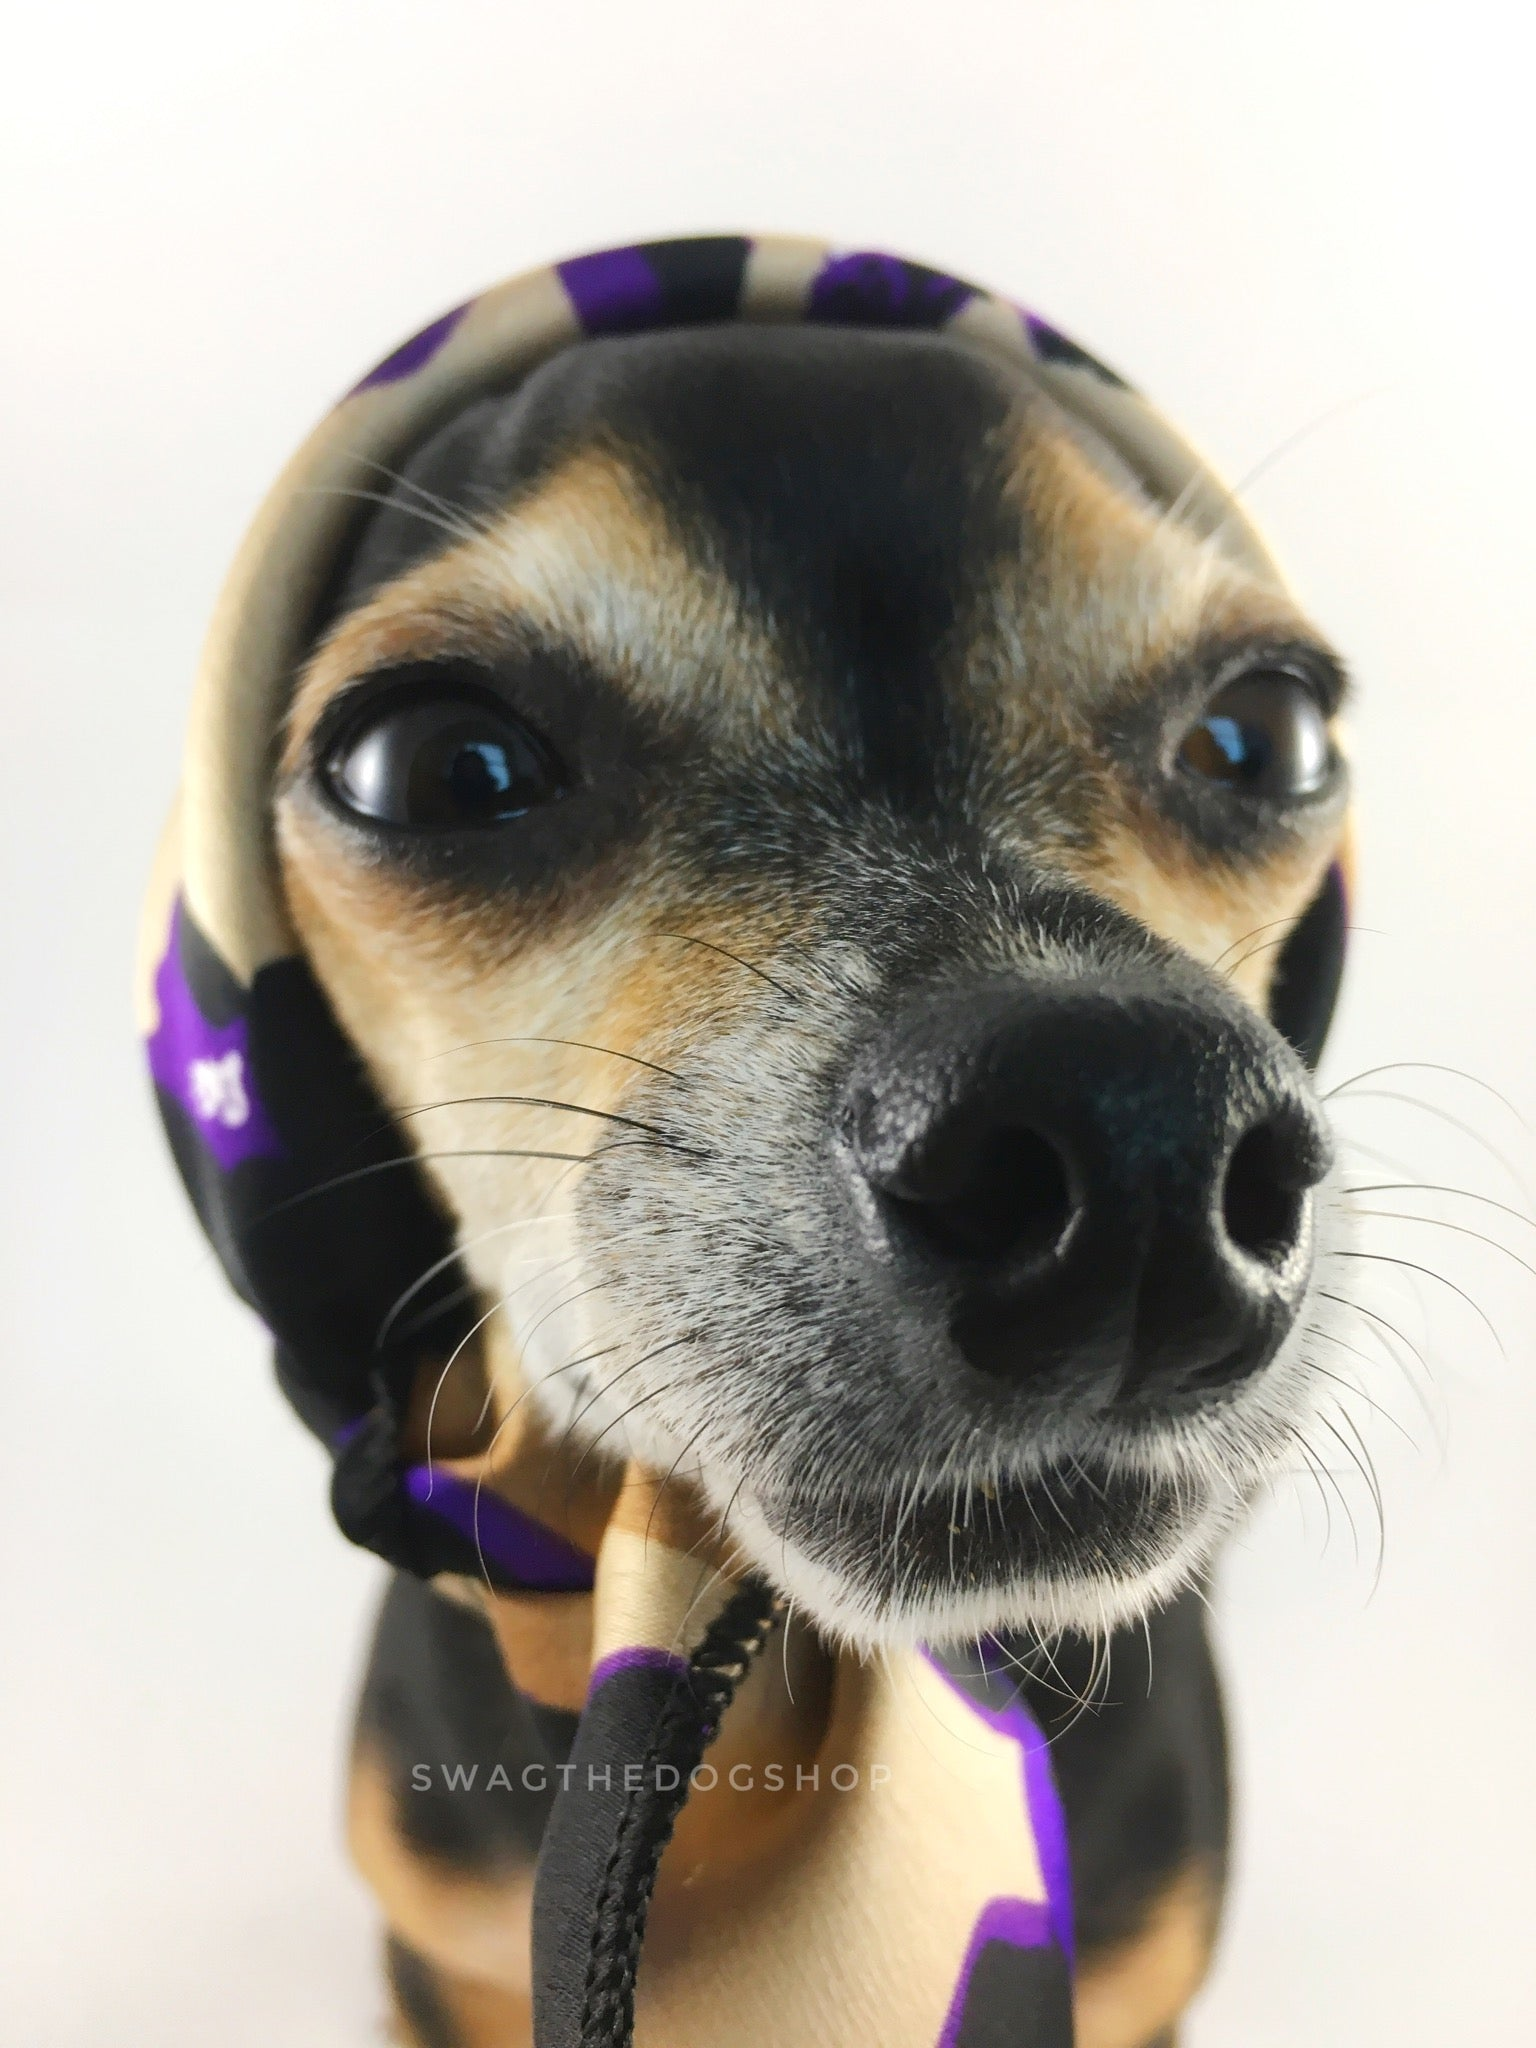 Fierce Beige with Purple Swagdana Scarf - Bust of Cute Chihuahua Wearing Swagdana Scarf as Headscarf. Dog Bandana. Dog Scarf